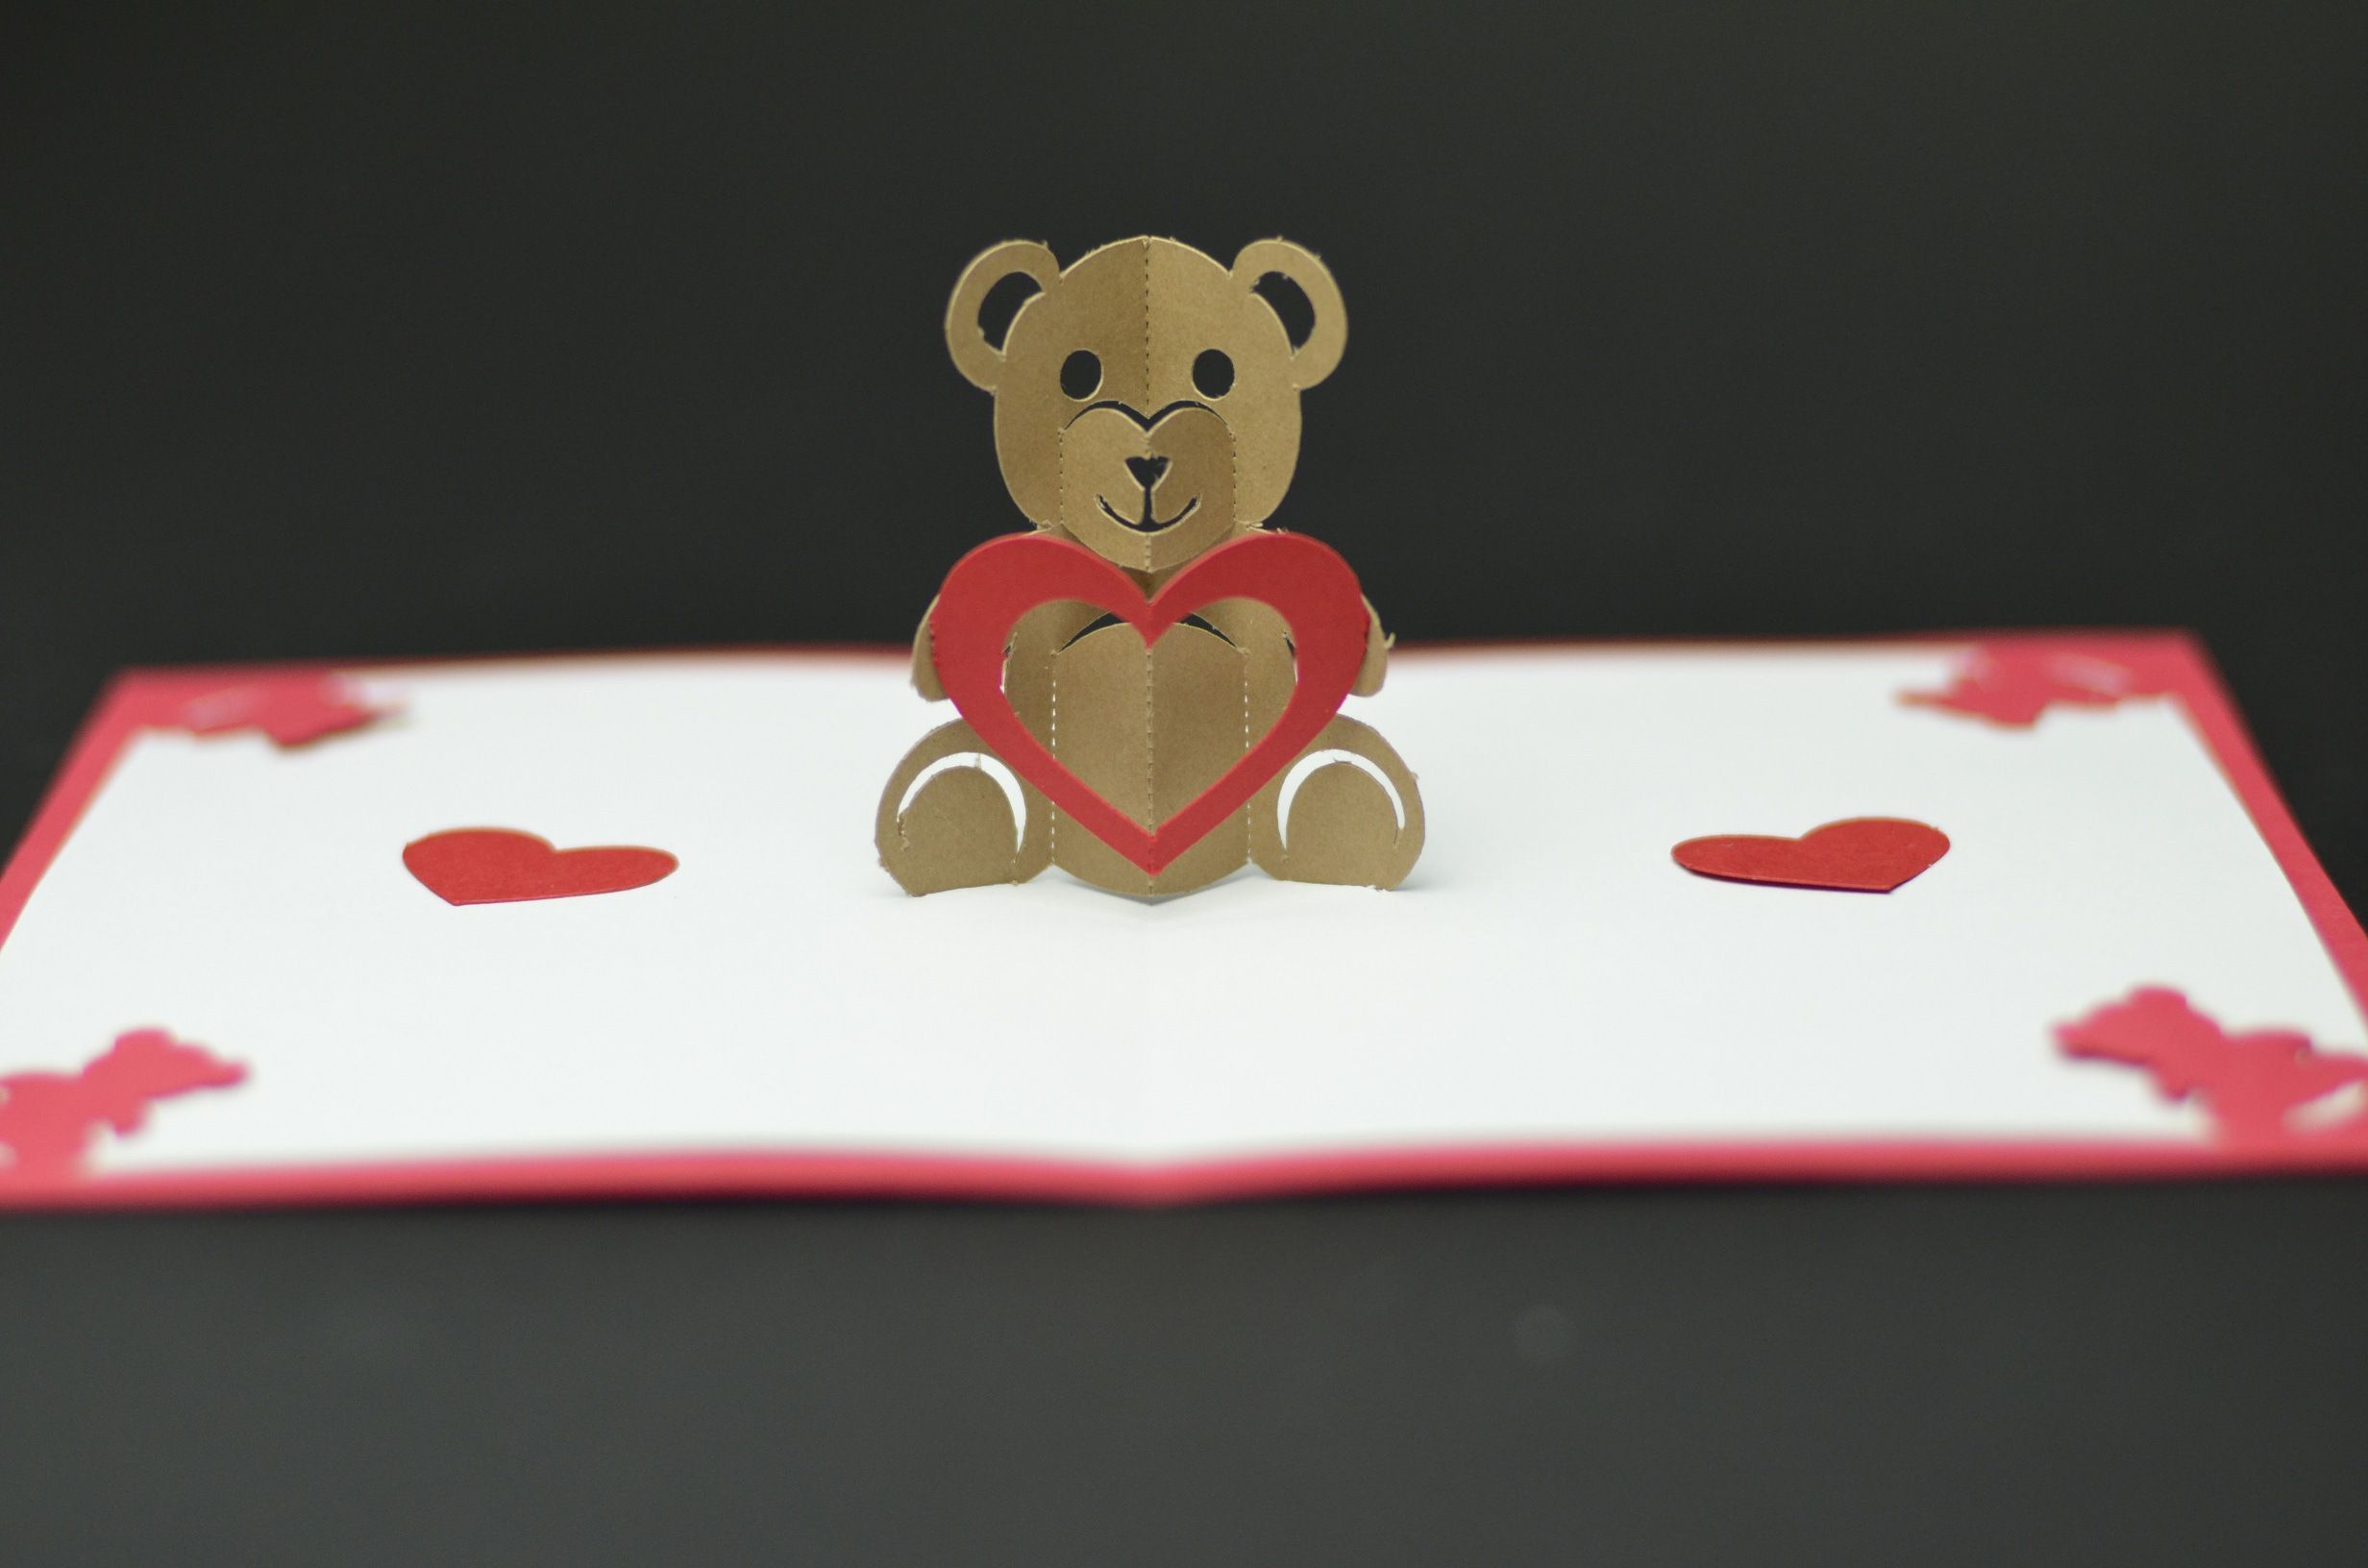 Free Valentines Day Pop Up Card Templates Teddy Bear Pop Up In Heart Pop Up Card Template Fr In 2020 Pop Up Card Templates Diy Pop Up Cards Diy Pop Up